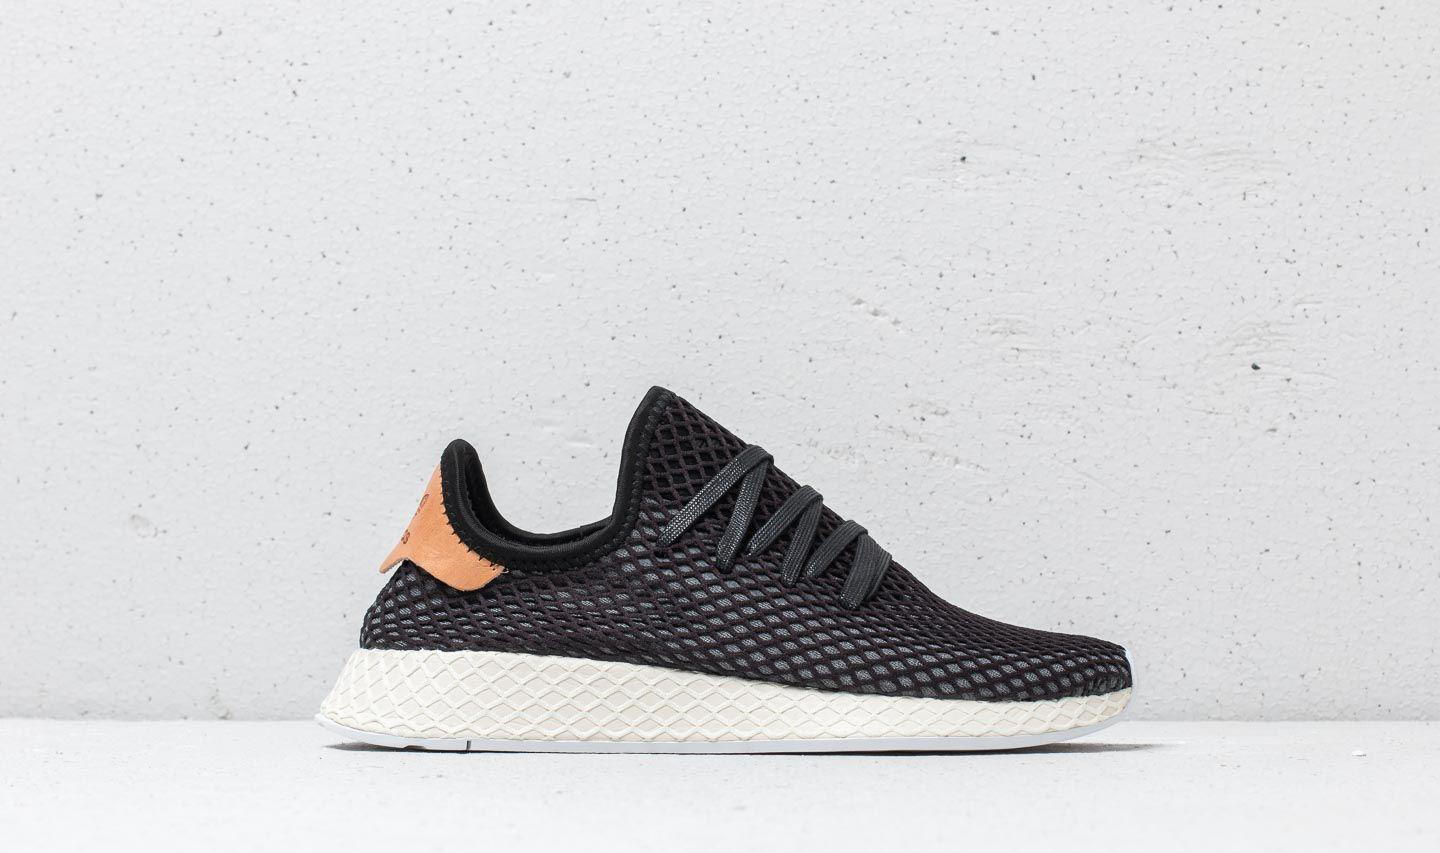 64b9611cecca4 Adidas Originals - Adidas Deerupt Runner Core Black  Core Black  Ash Pearl  for Men. View fullscreen